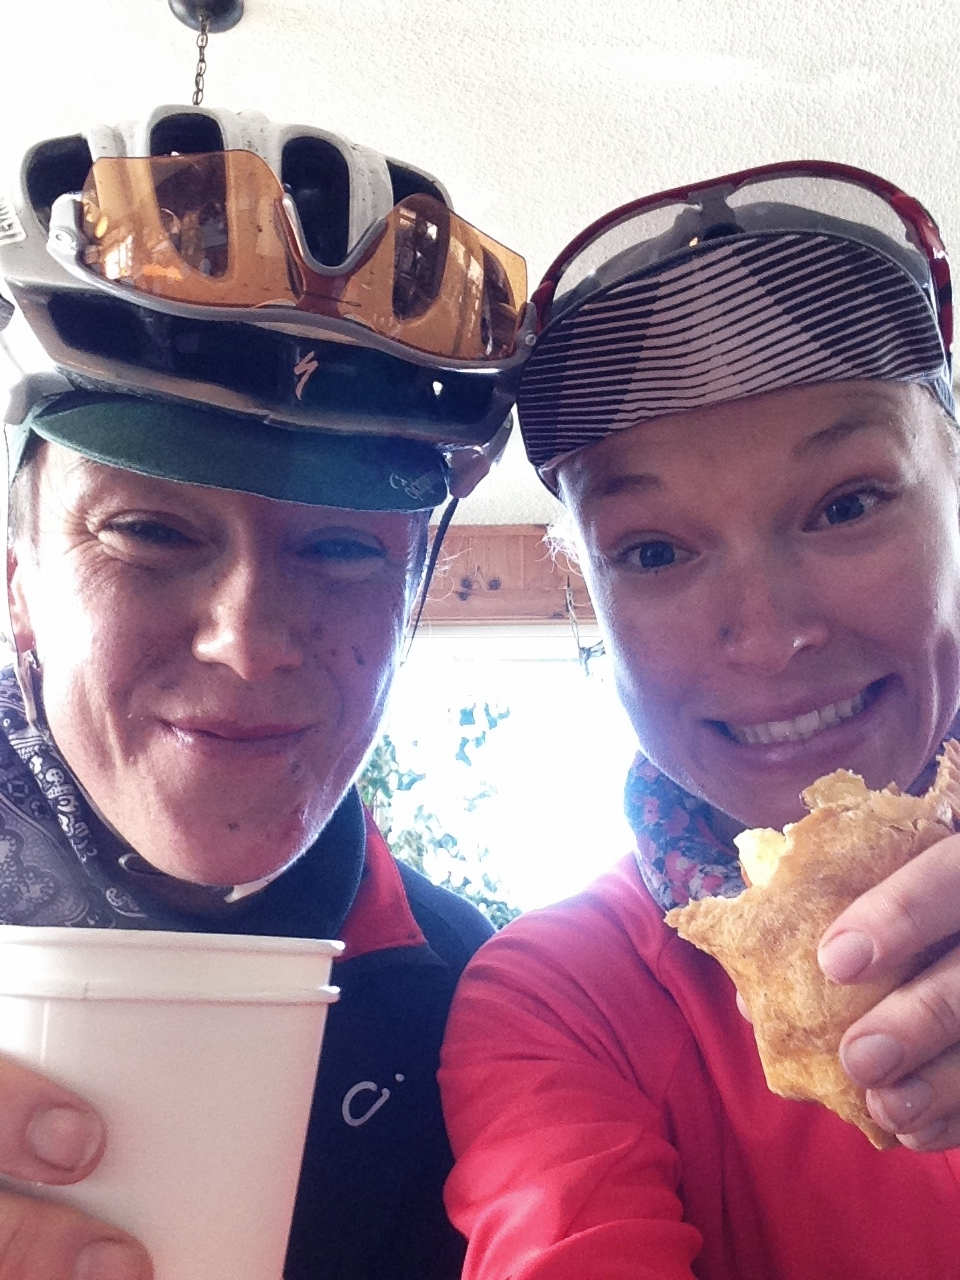 Dirty faces and the best breakfast burrito ever at the Green Salmon Cafe in Yachats!